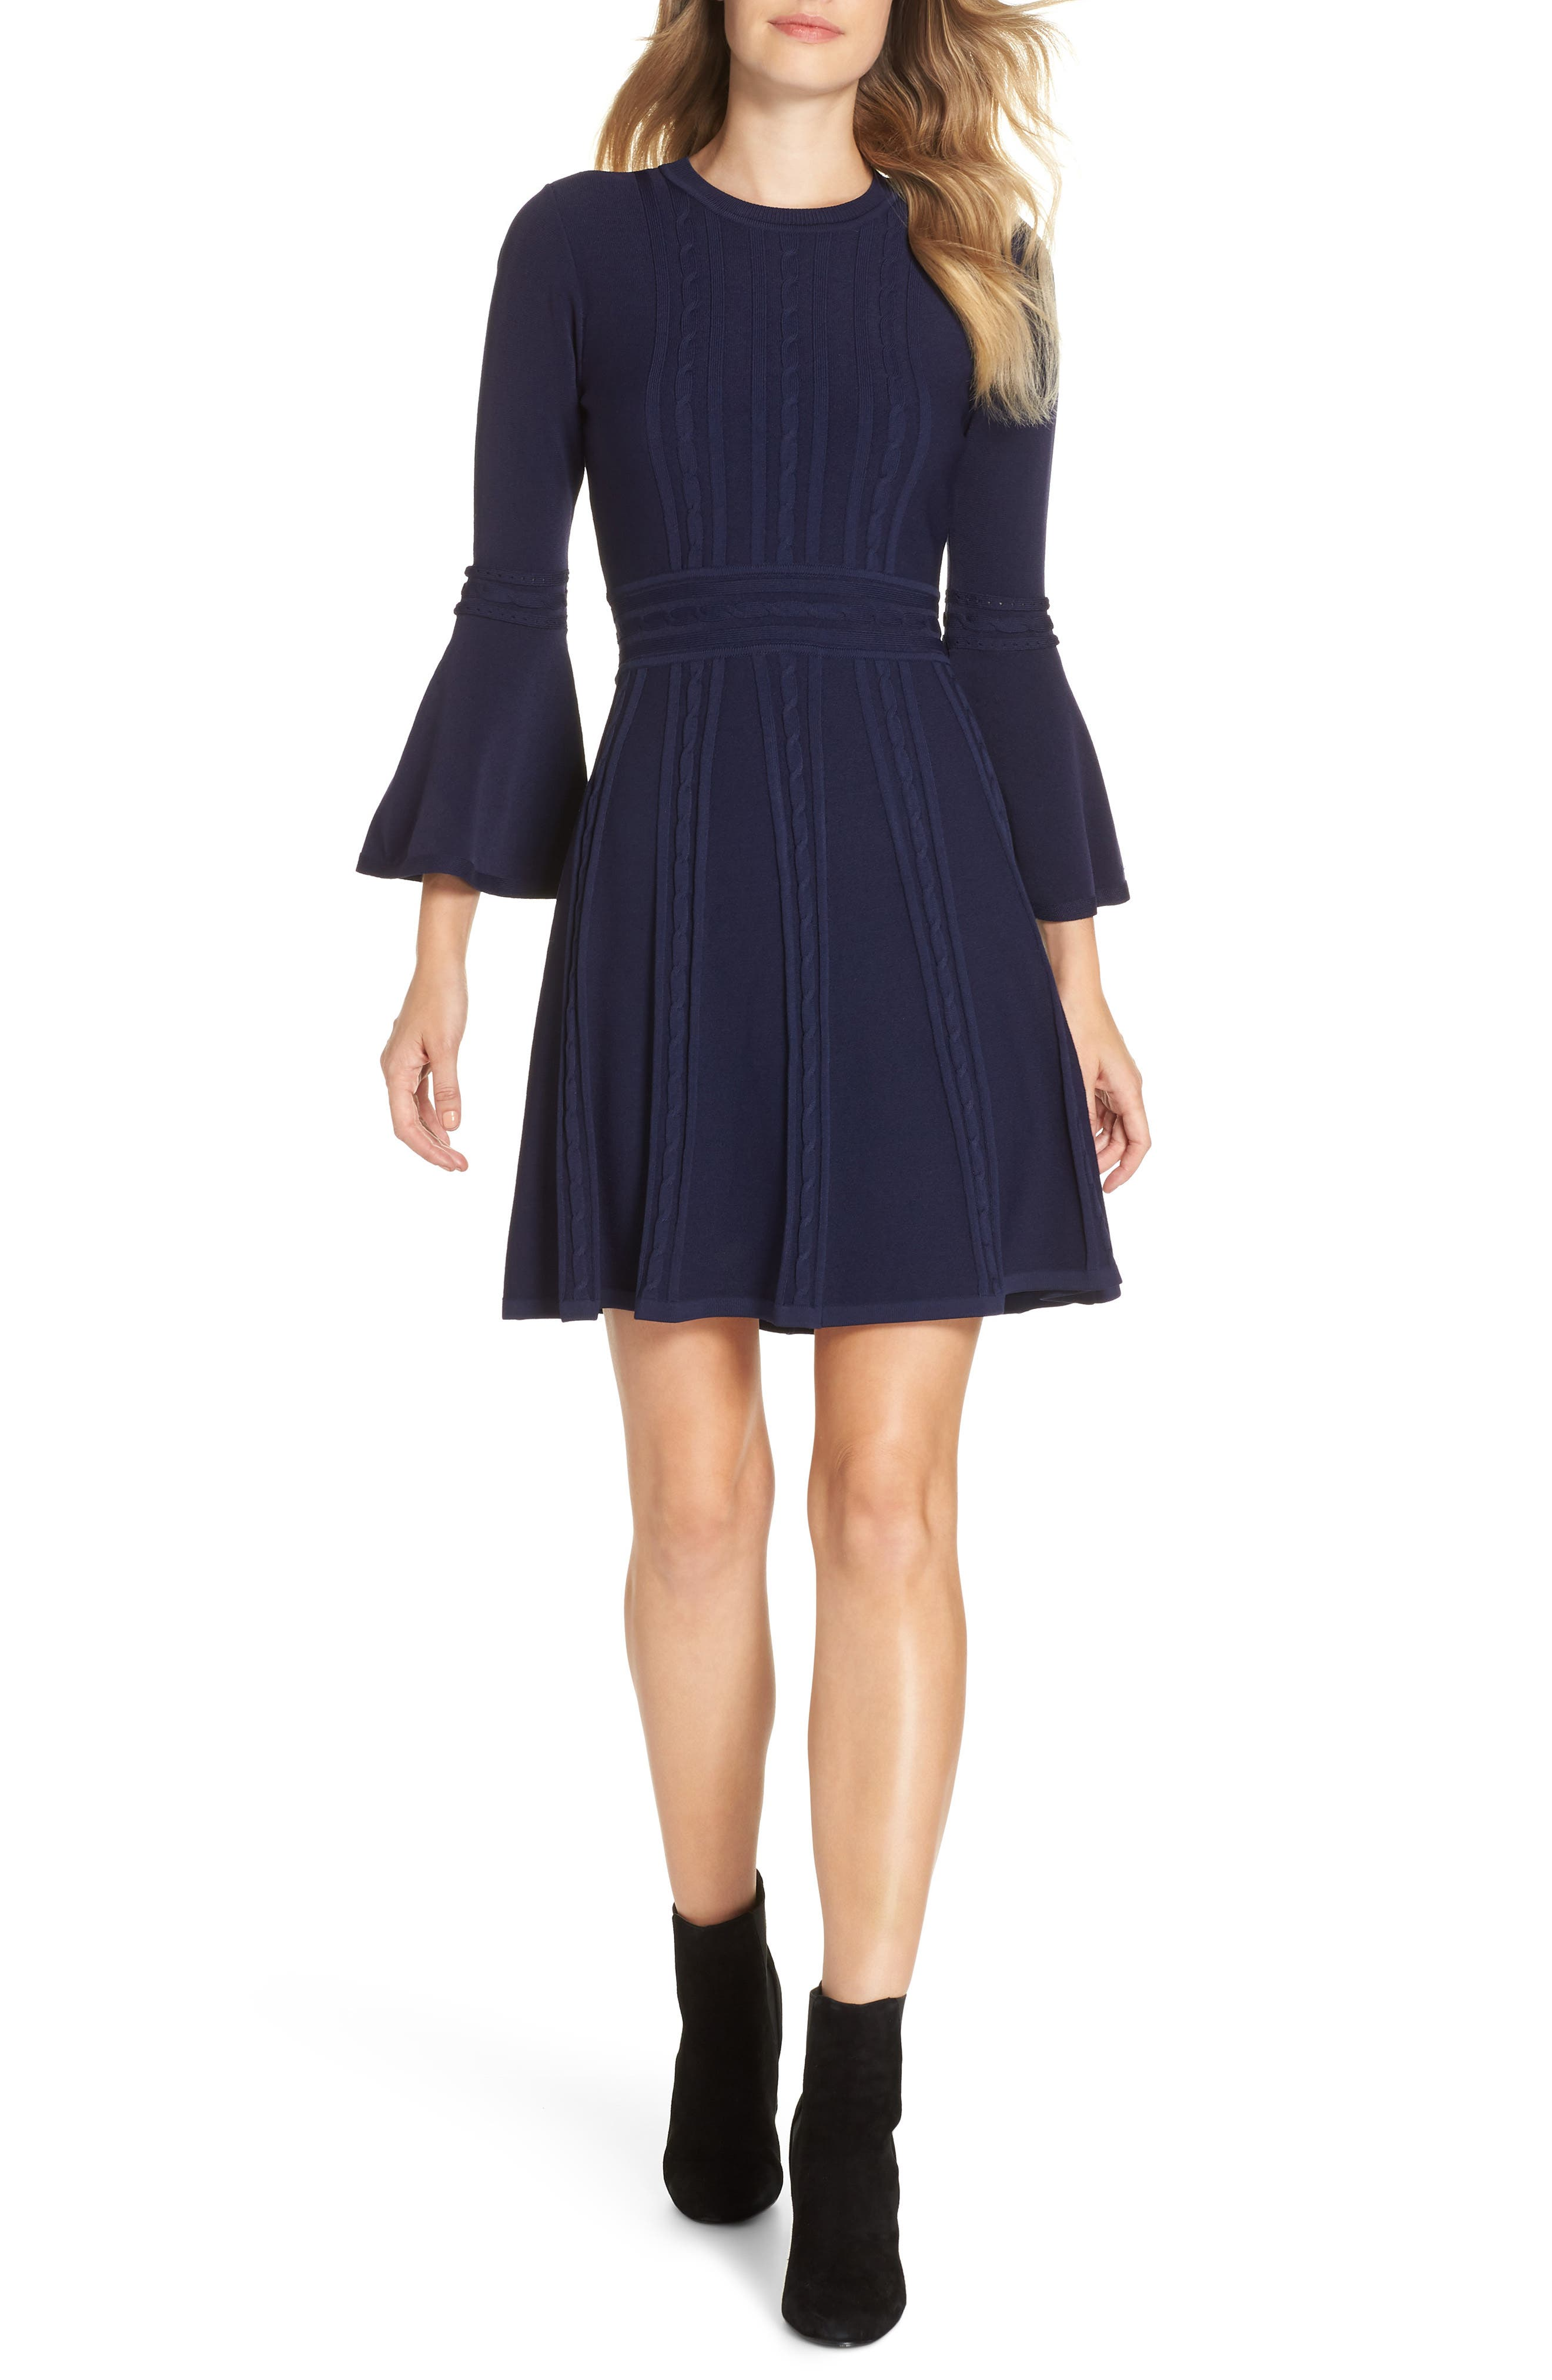 ELIZA J Bell Sleeve Sweater Dress, Main, color, 410